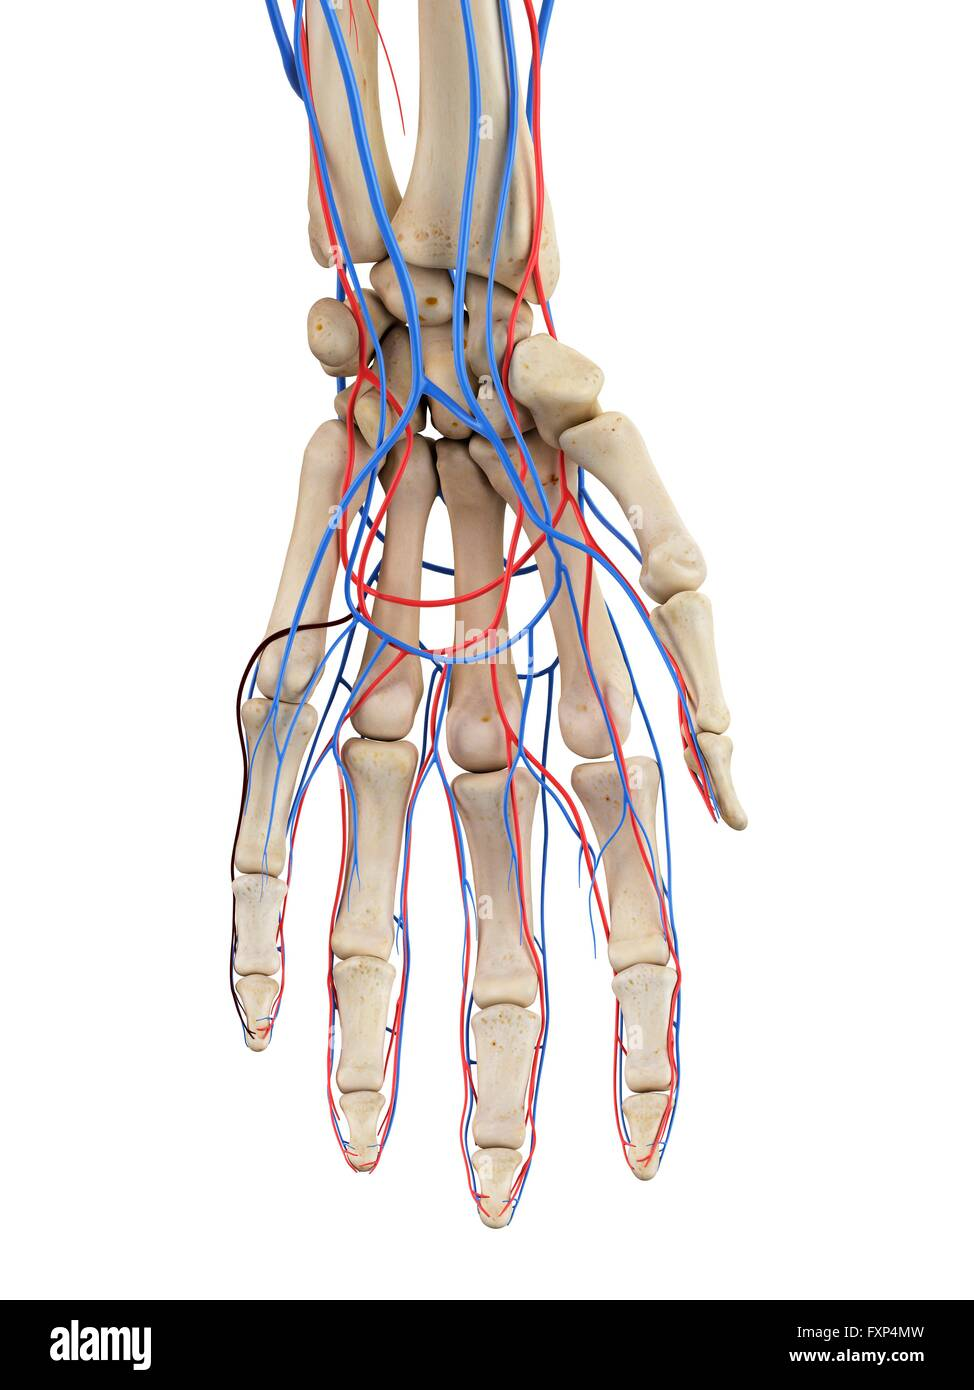 Human Hand Veins And Arteries Computer Illustration Stock Photo